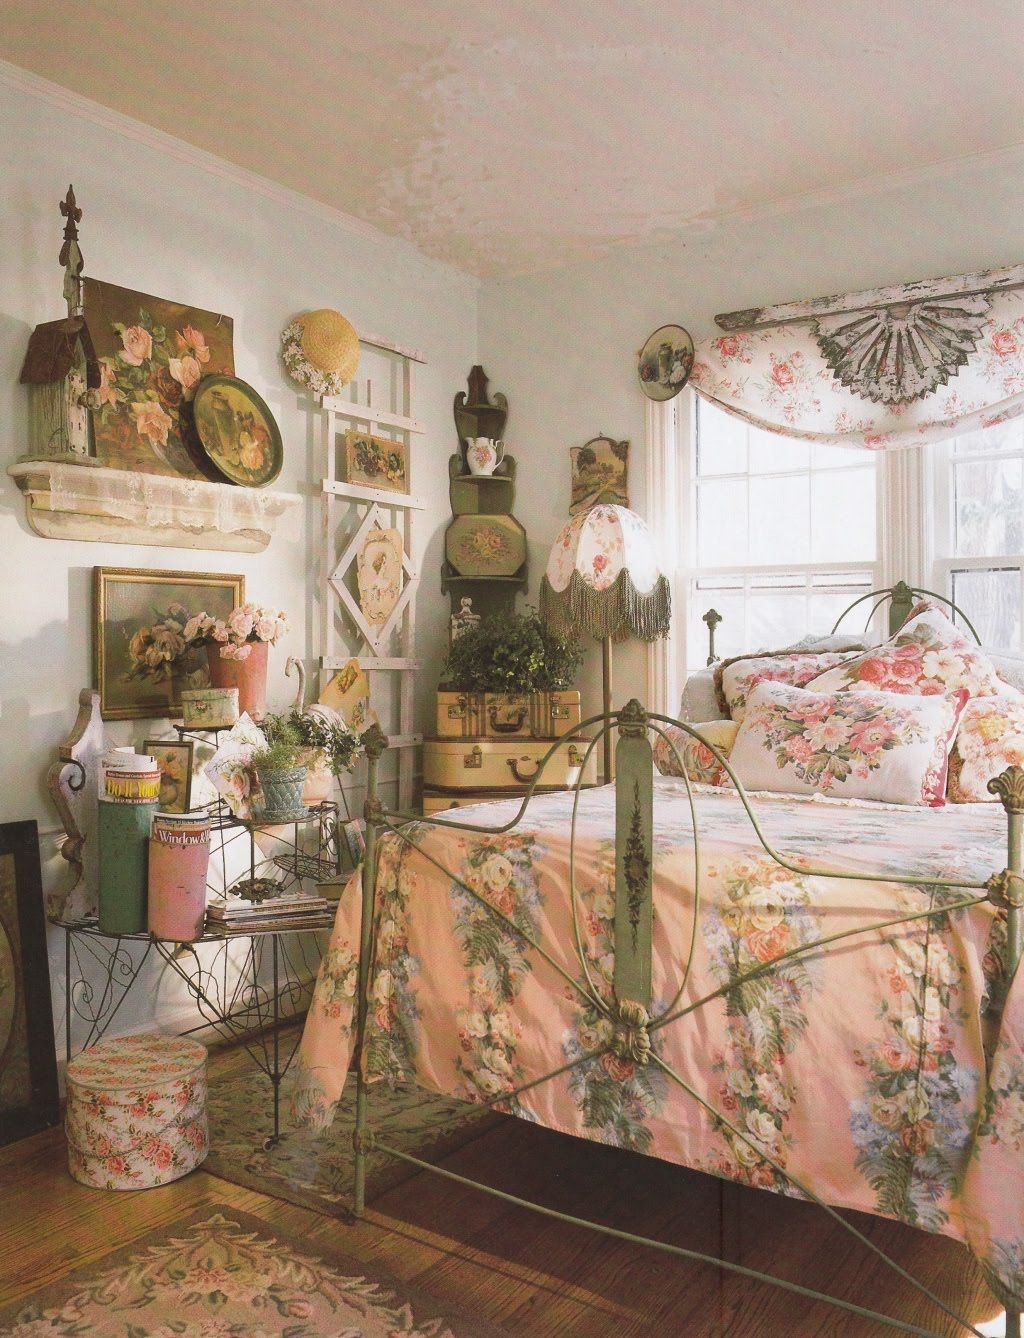 Living Room Vintage Room Decorating Ideas 1000 images about 3 vintage bedrooms on pinterest room and bedroom furniture